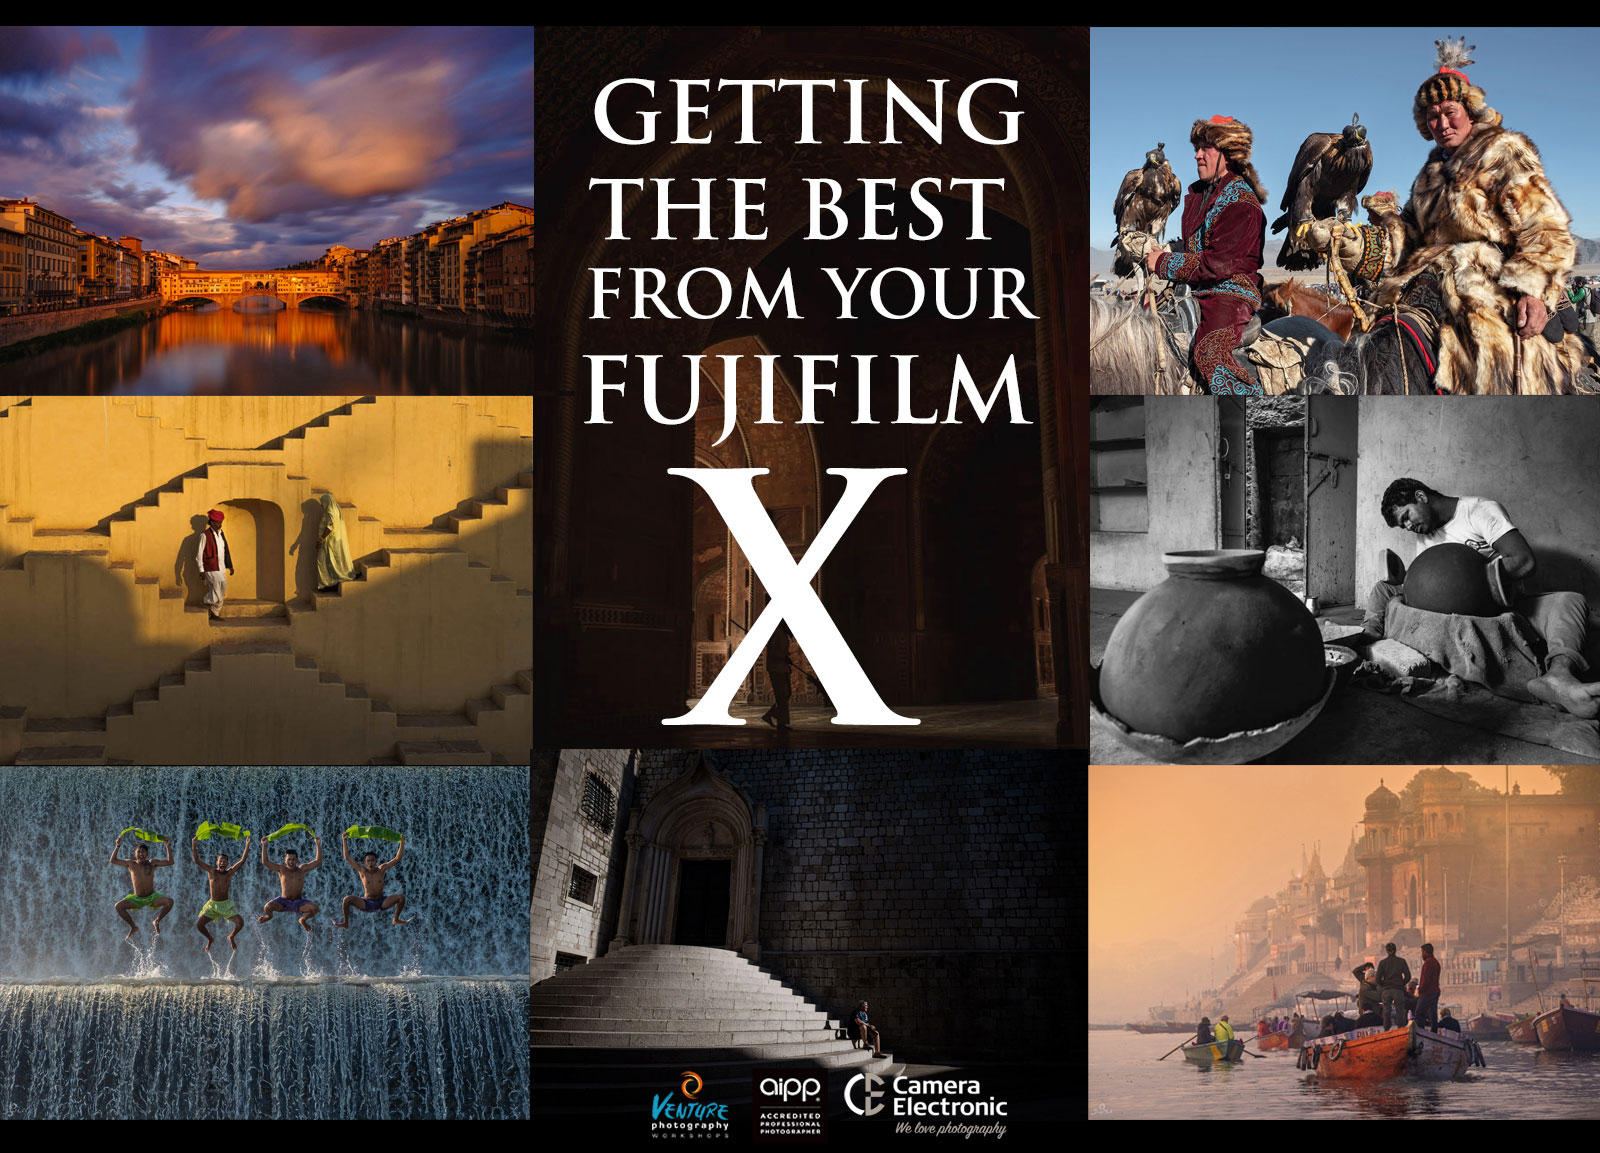 Getting the Best from your Fujifilm X Camera